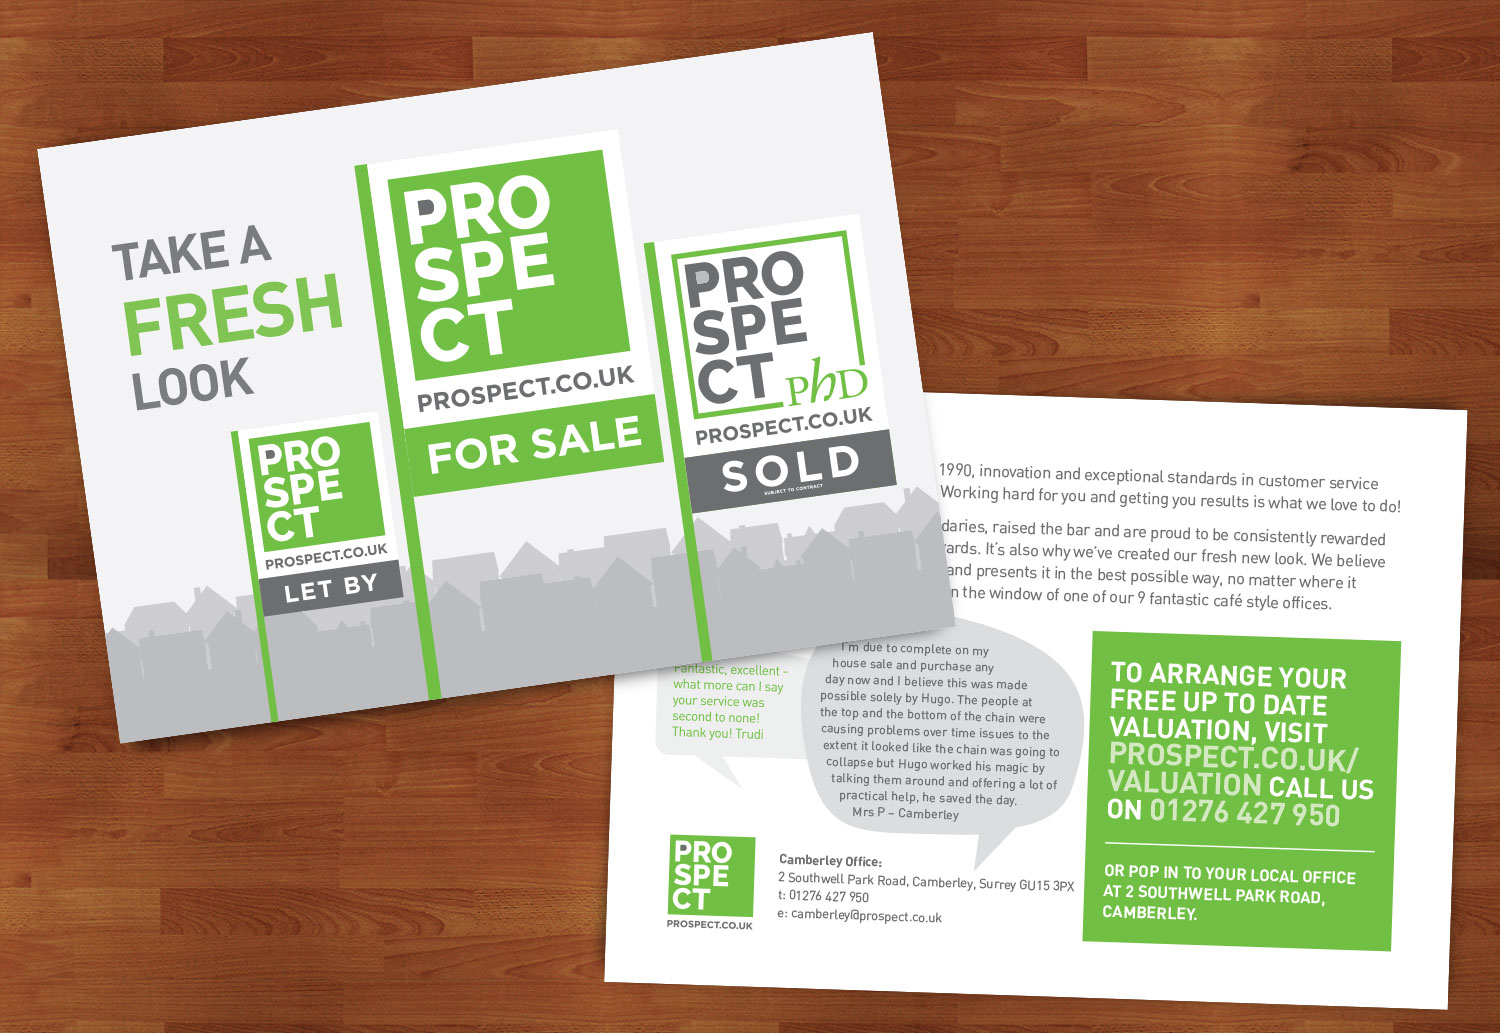 A launch mailer campaign to promote the rebrand